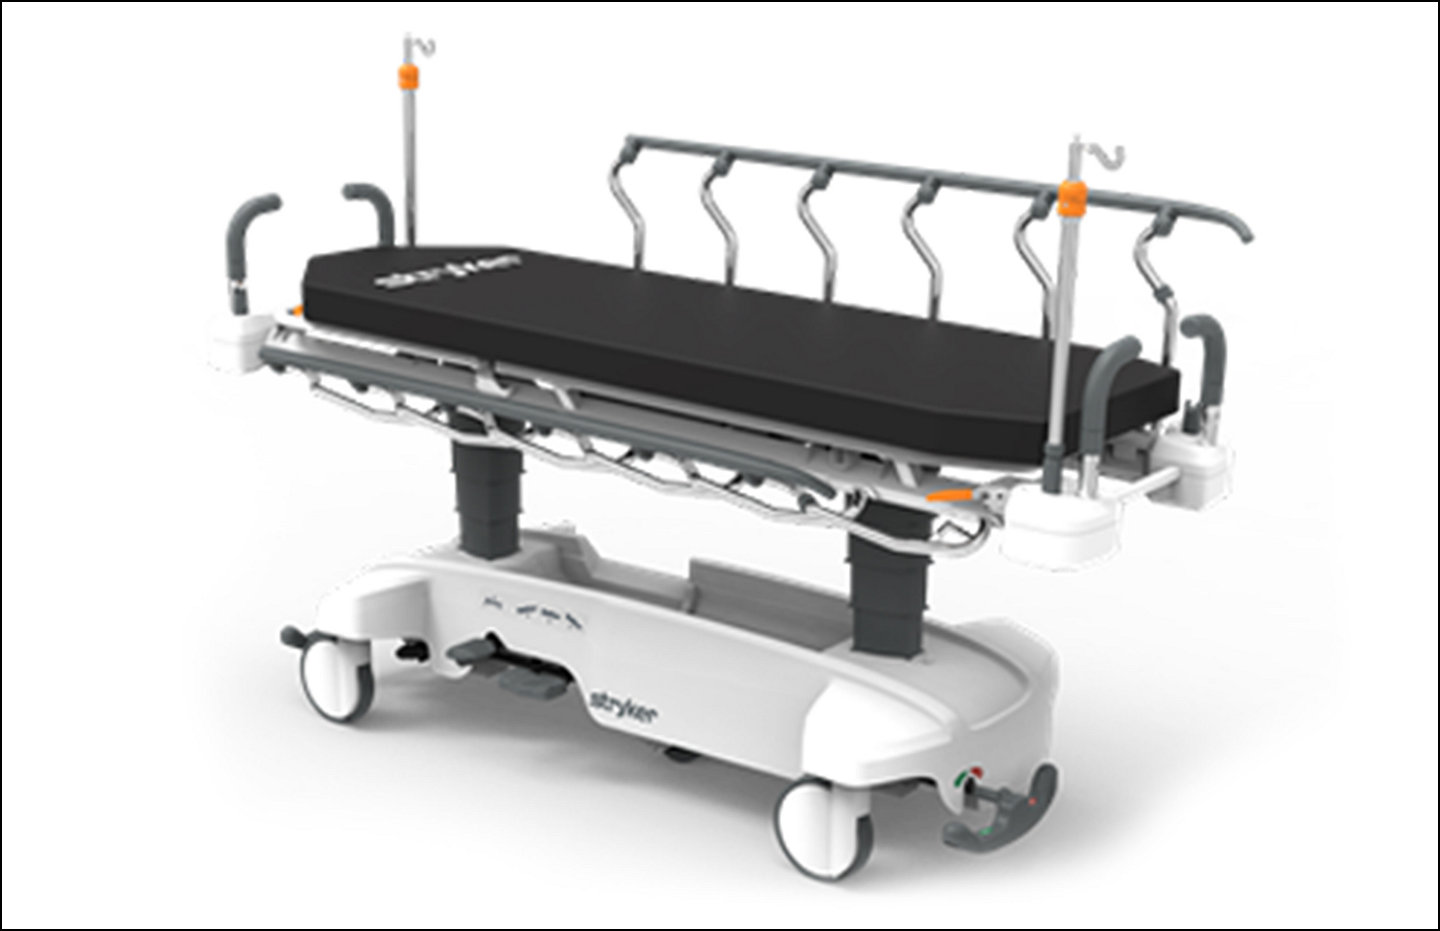 Stryker's ST1 stretcher